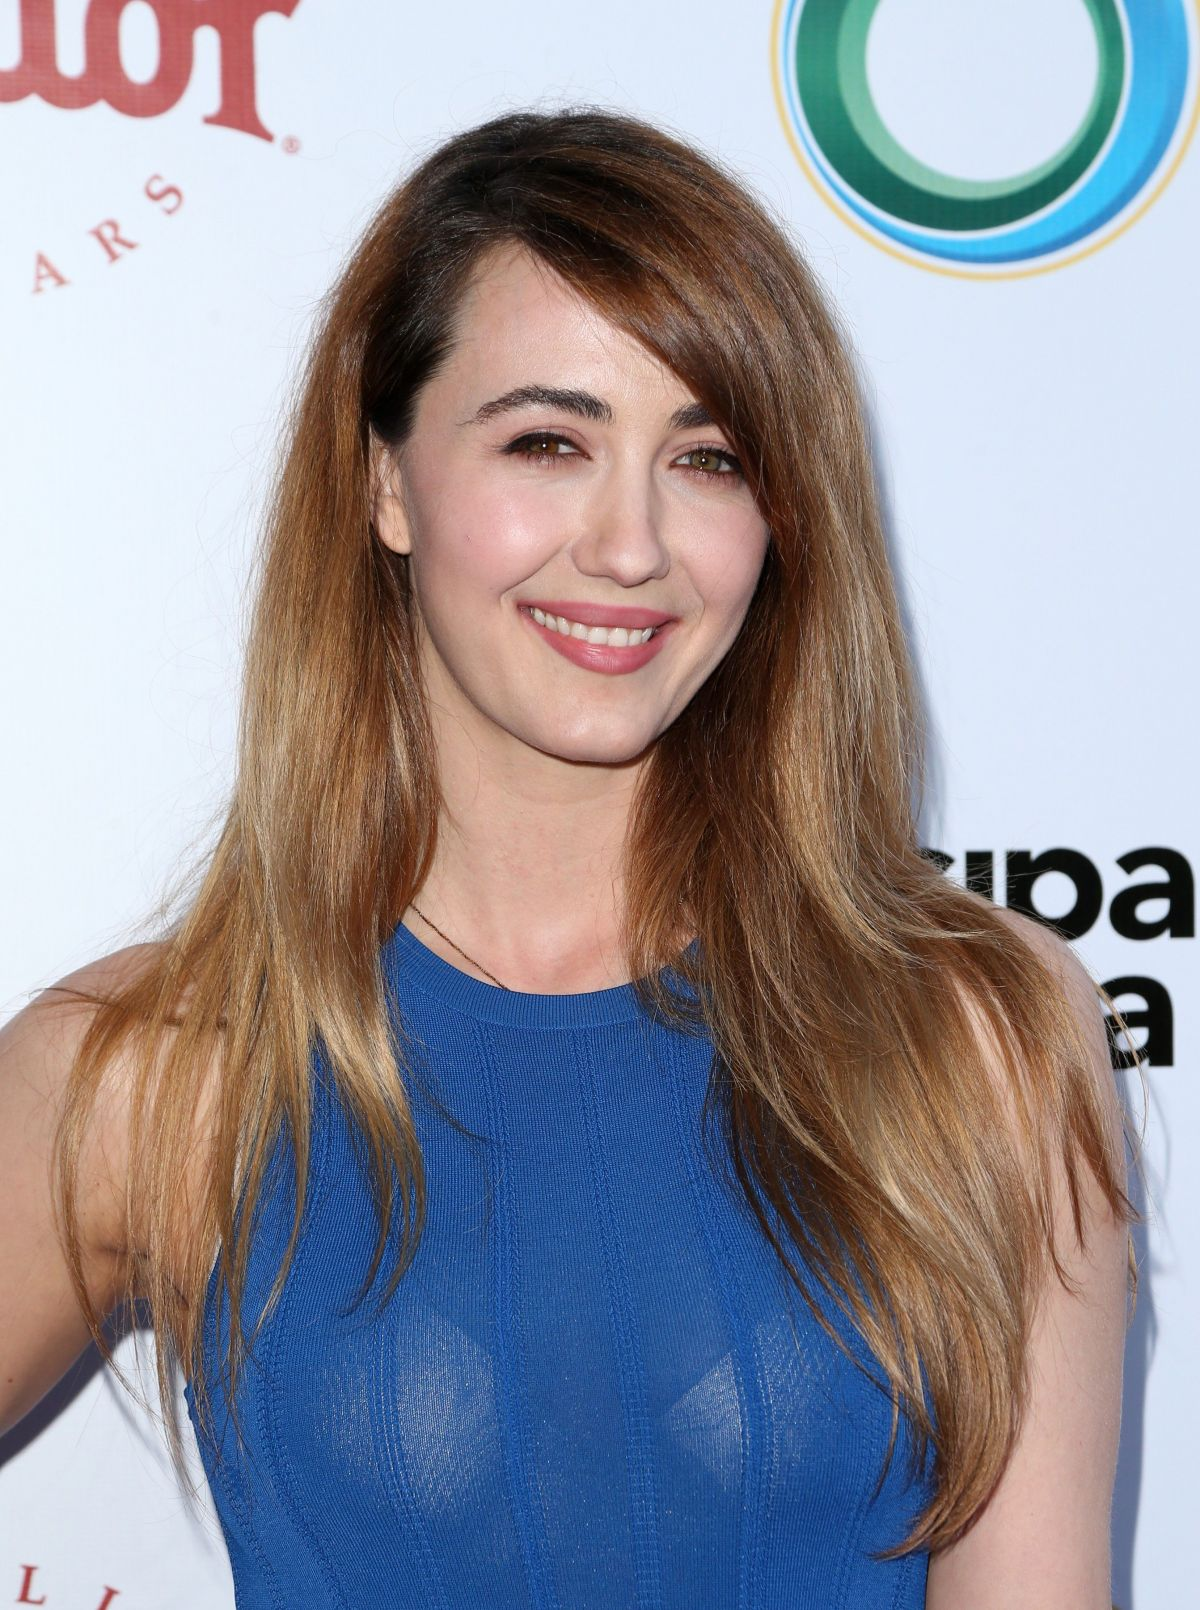 Pics Madeline Zima naked (57 photos), Sexy, Fappening, Twitter, braless 2020